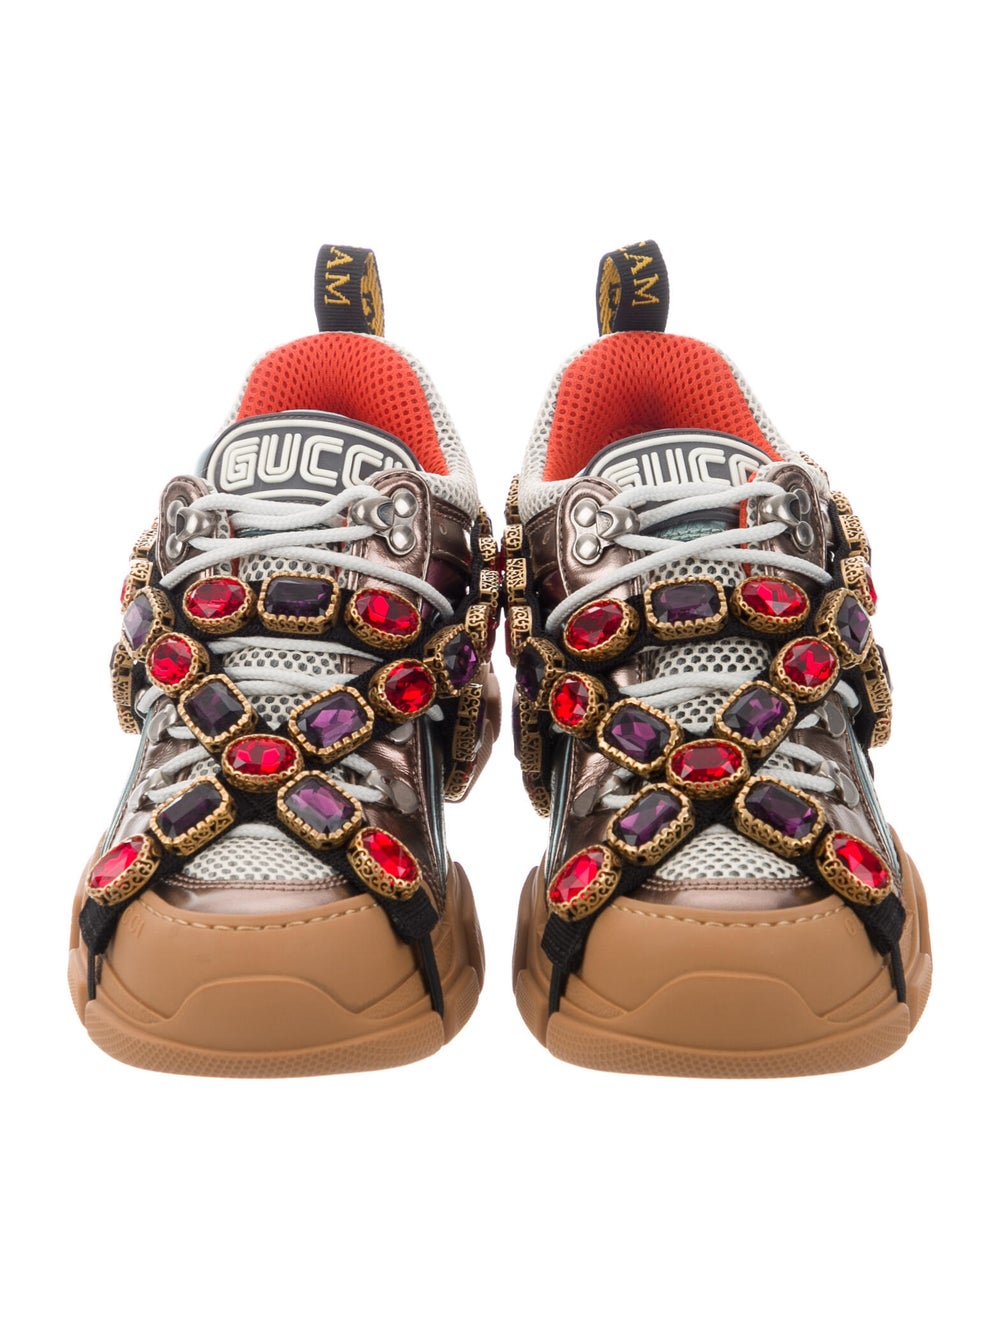 Gucci Leather Crystal Embellishments Chunky Sneak… - image 3